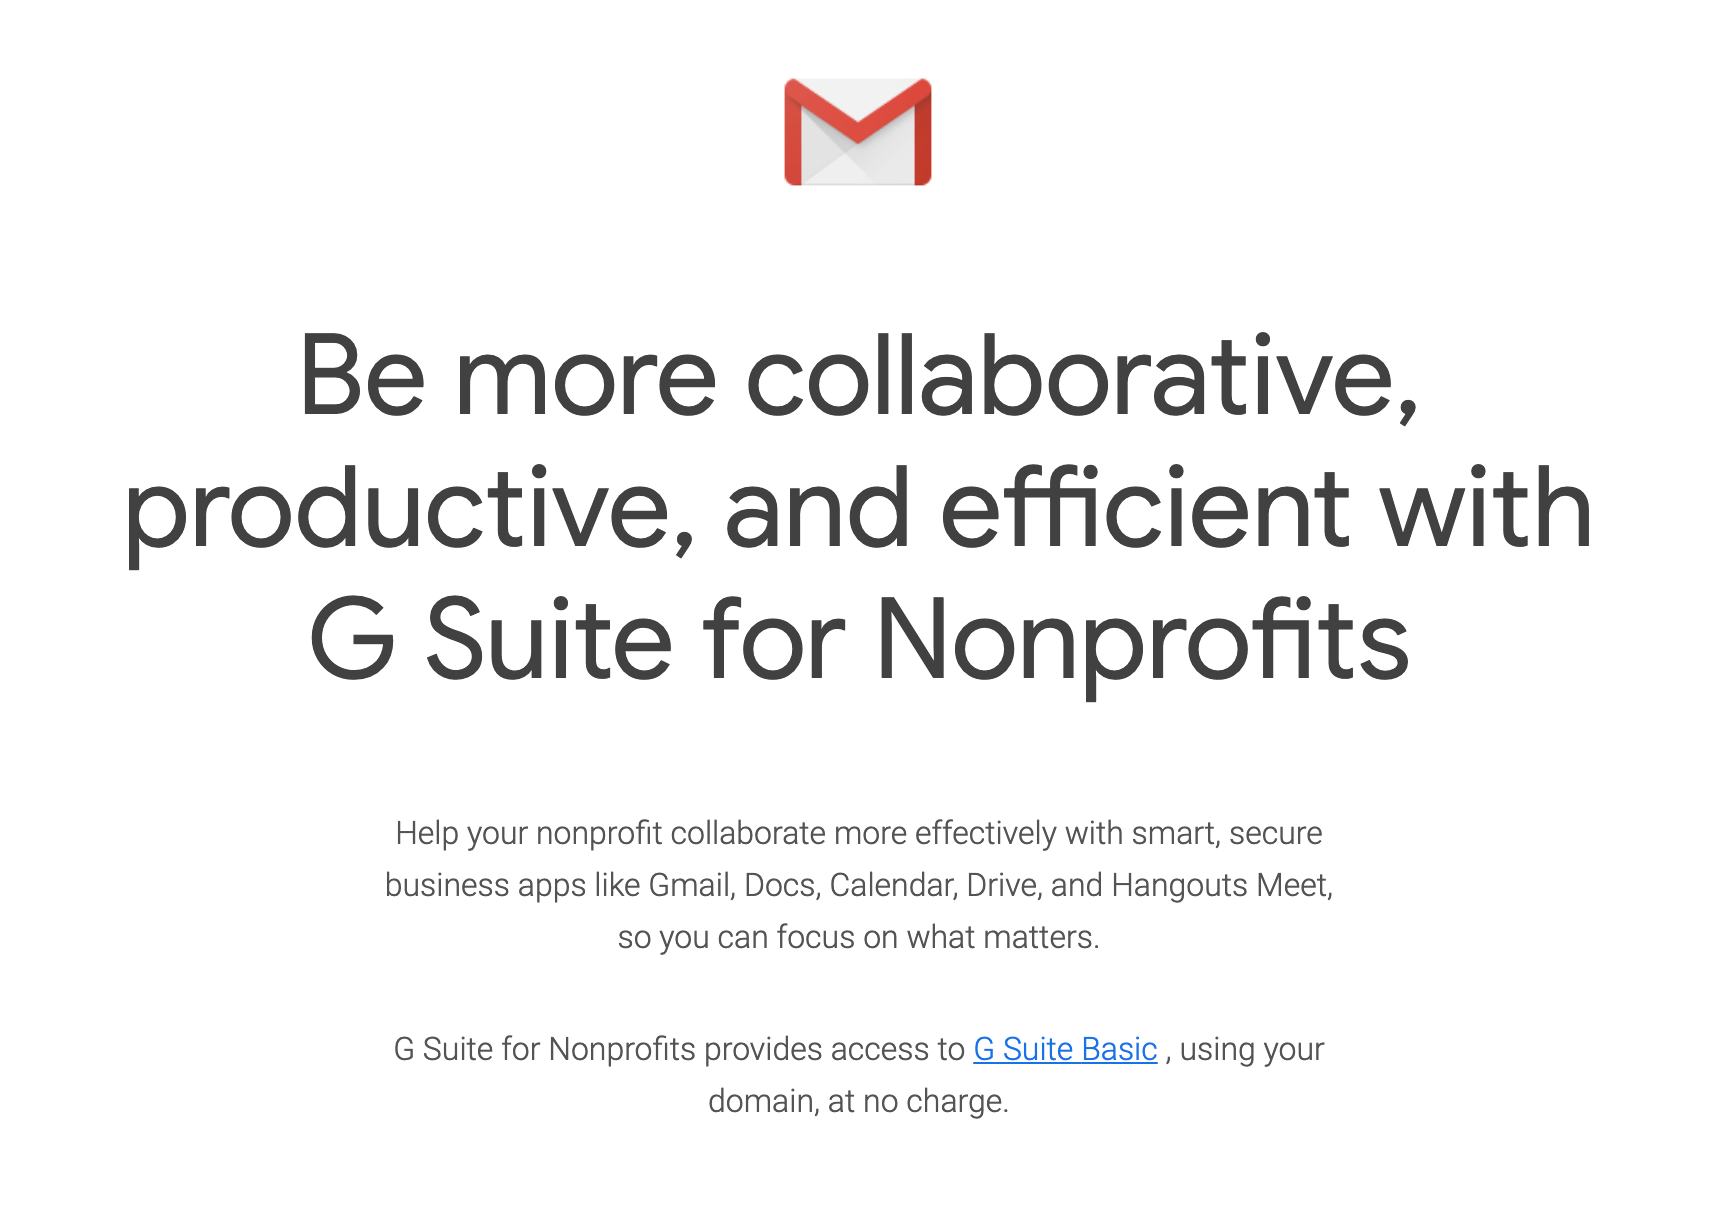 How to Get G Suite for Free As a Nonprofit